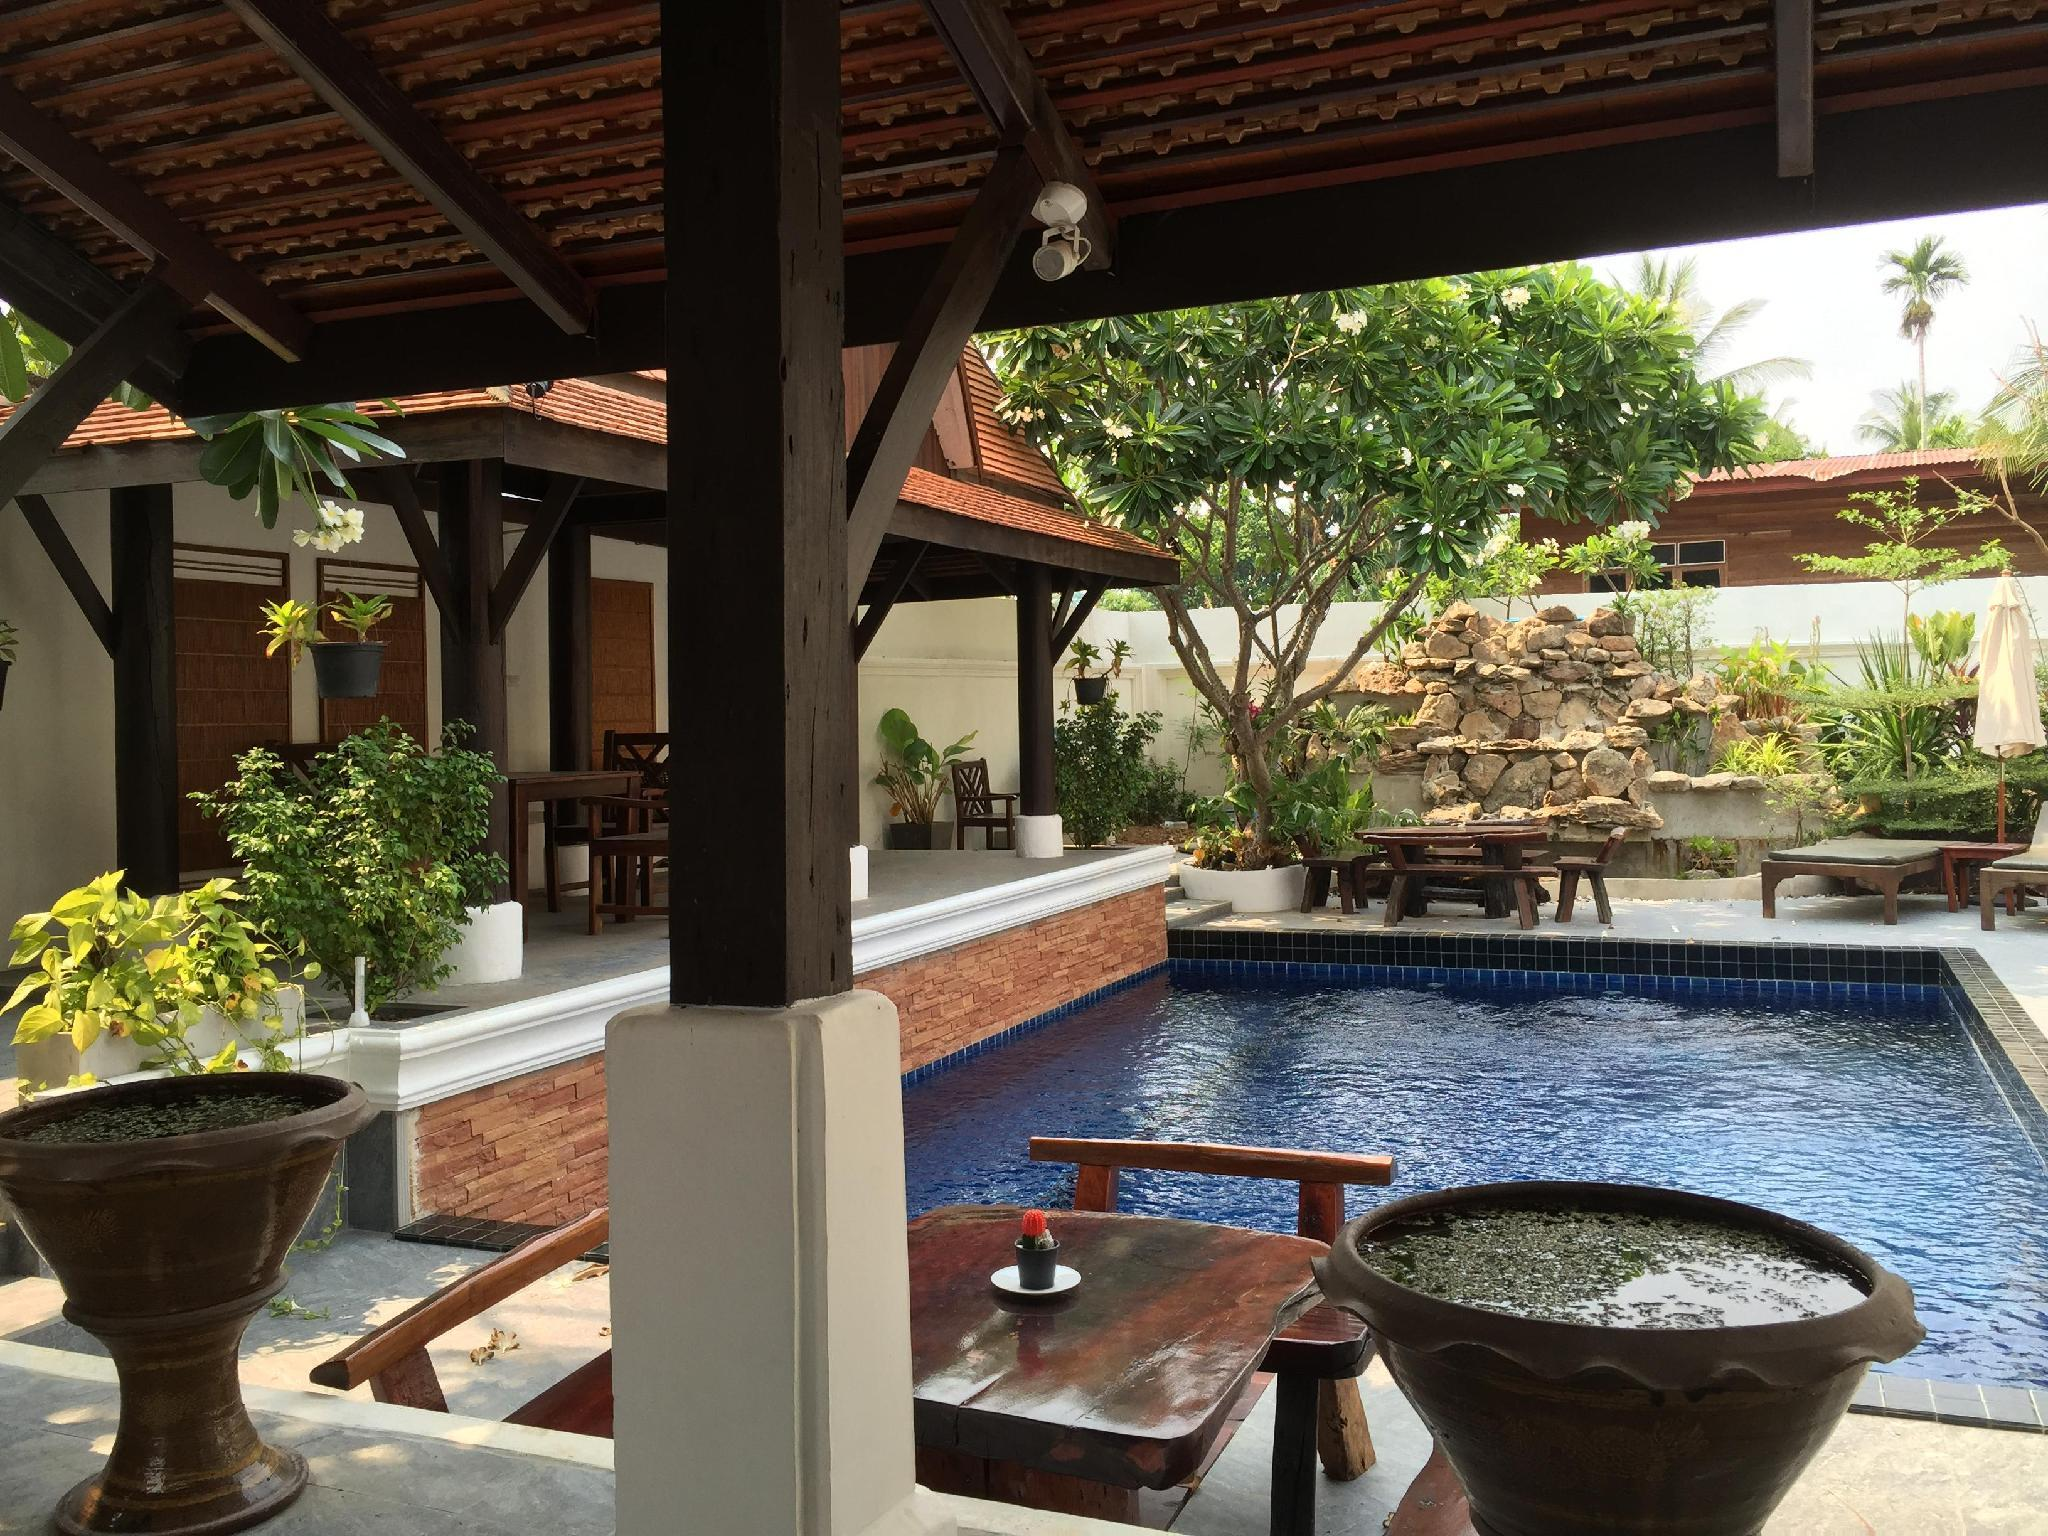 Staying as part of the family in this lovely villa is Fascinating and Fun. - 32557426, Kantharalak